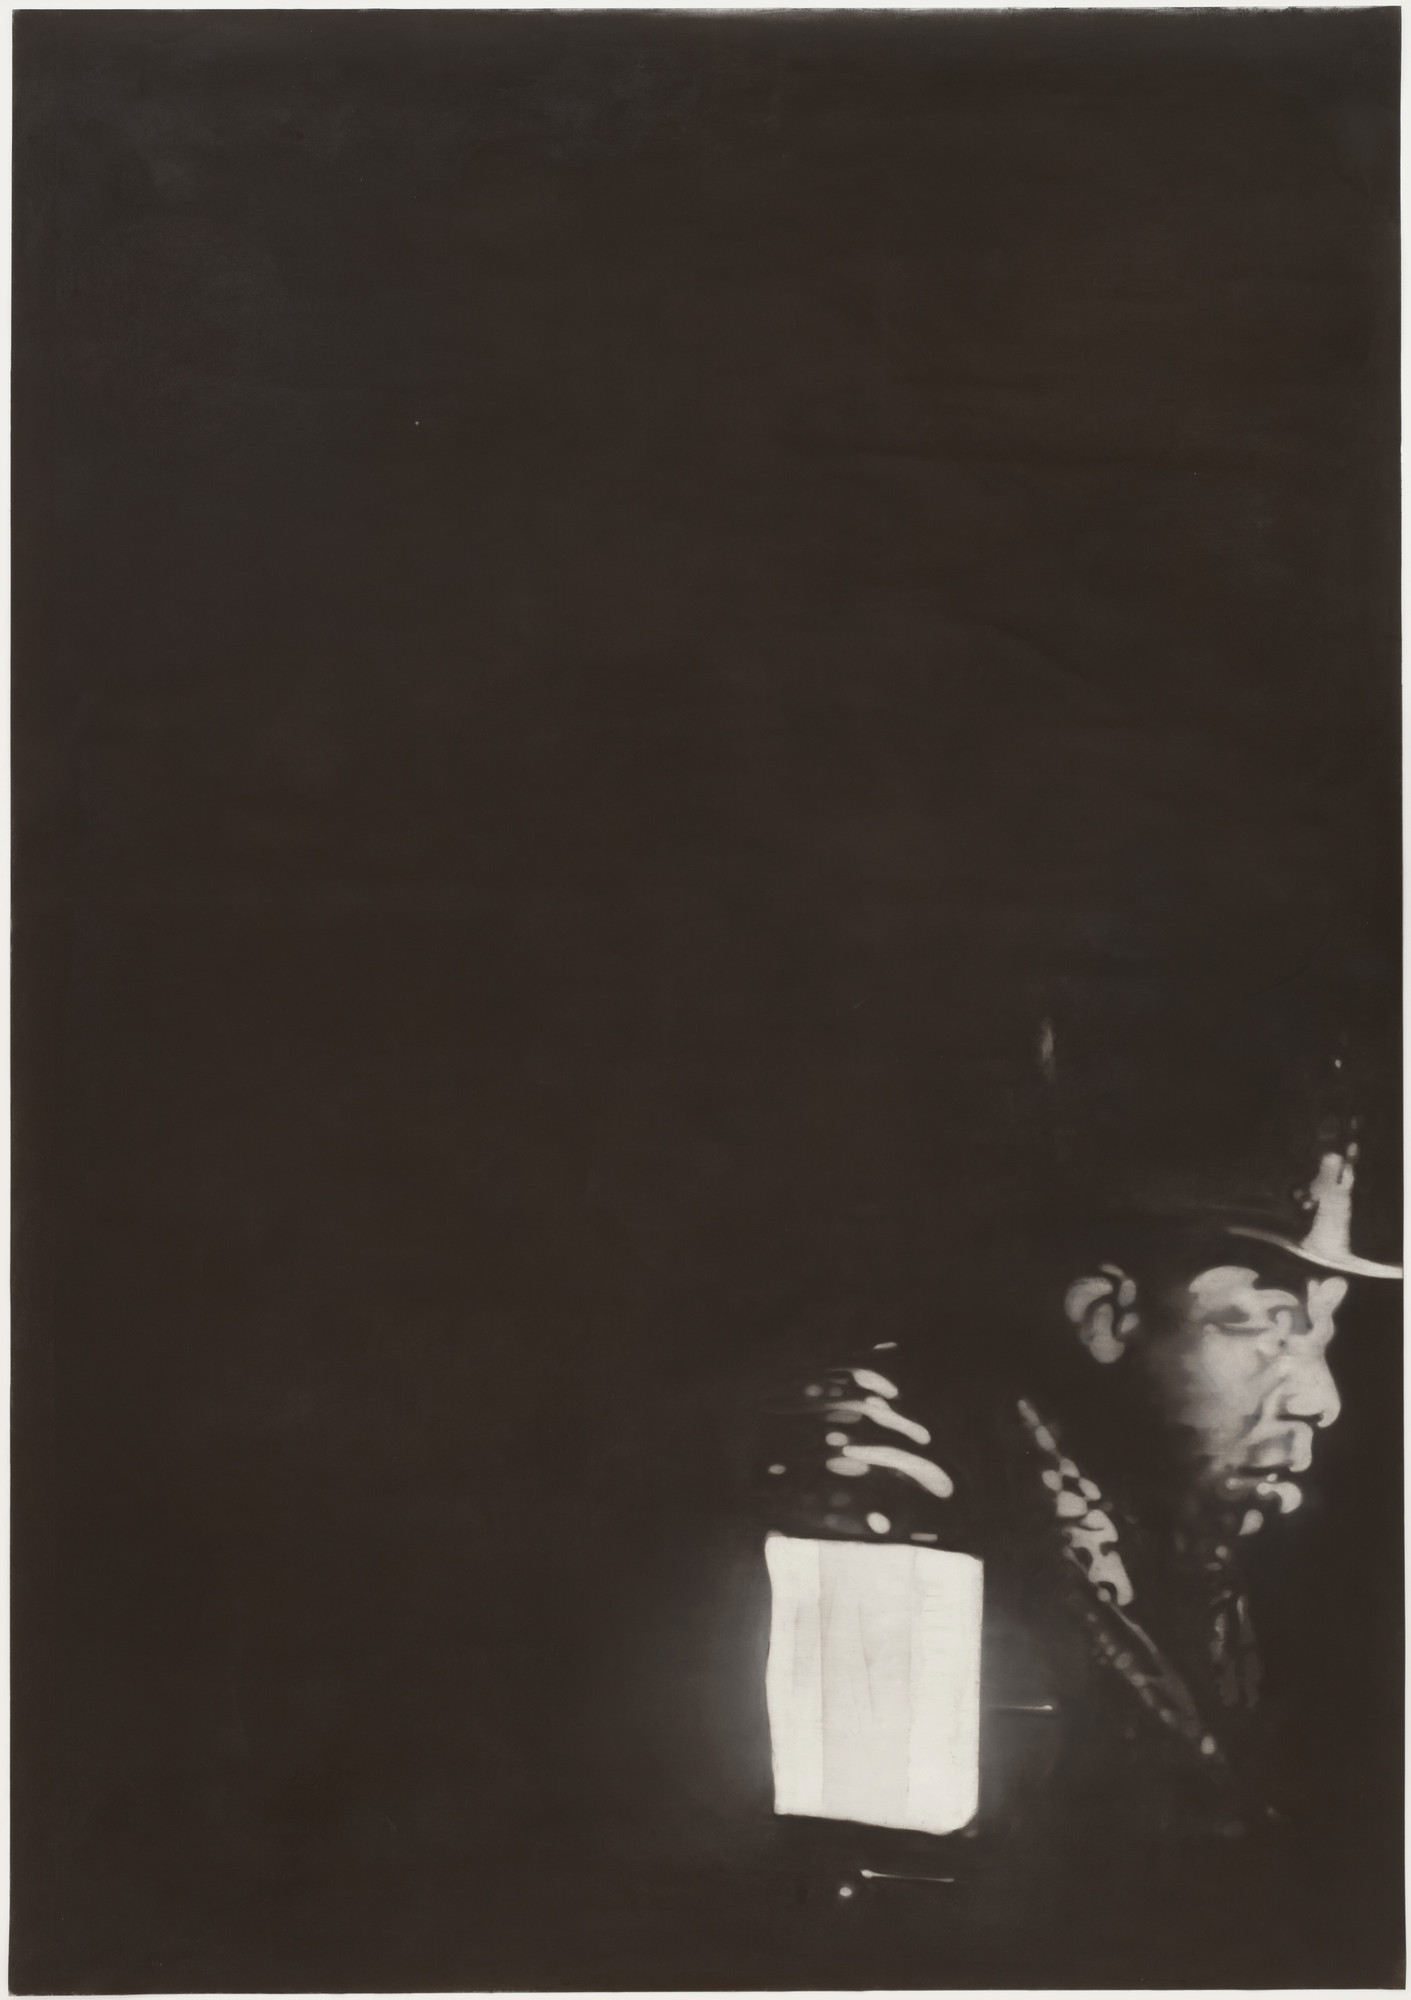 Johannes Kahrs. Untitled (Man with Light). (2004)